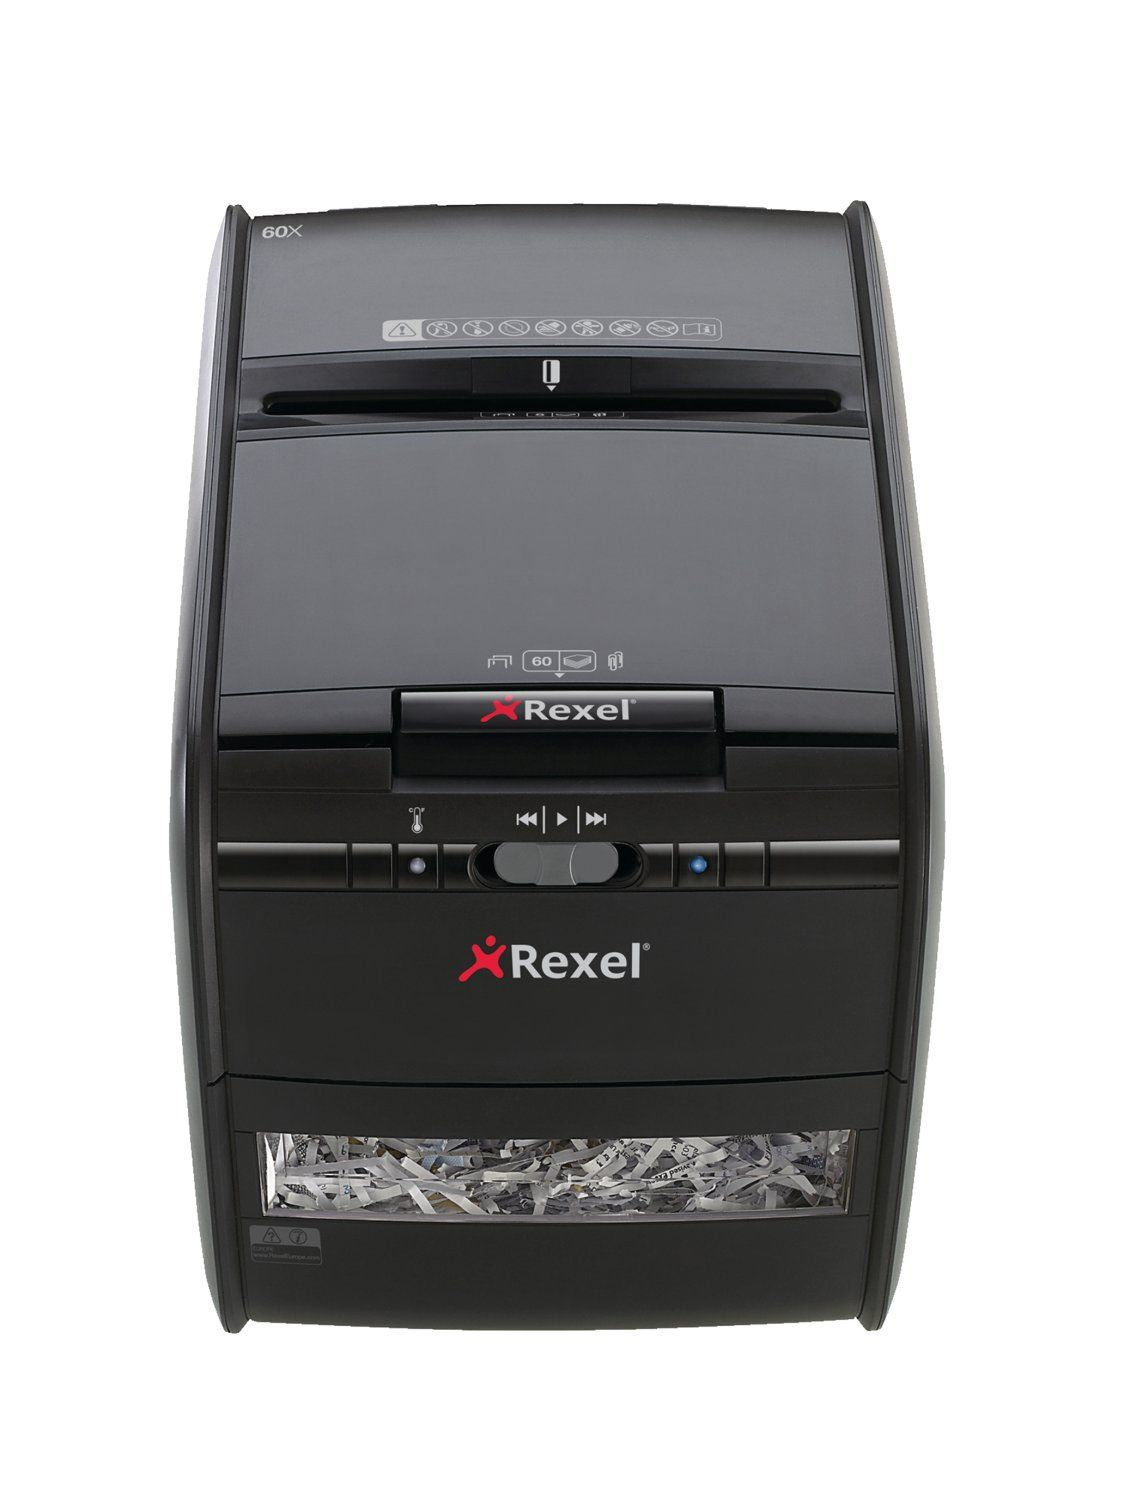 Rexel Auto+ 60X Cross Cut Shredder Black 2103060